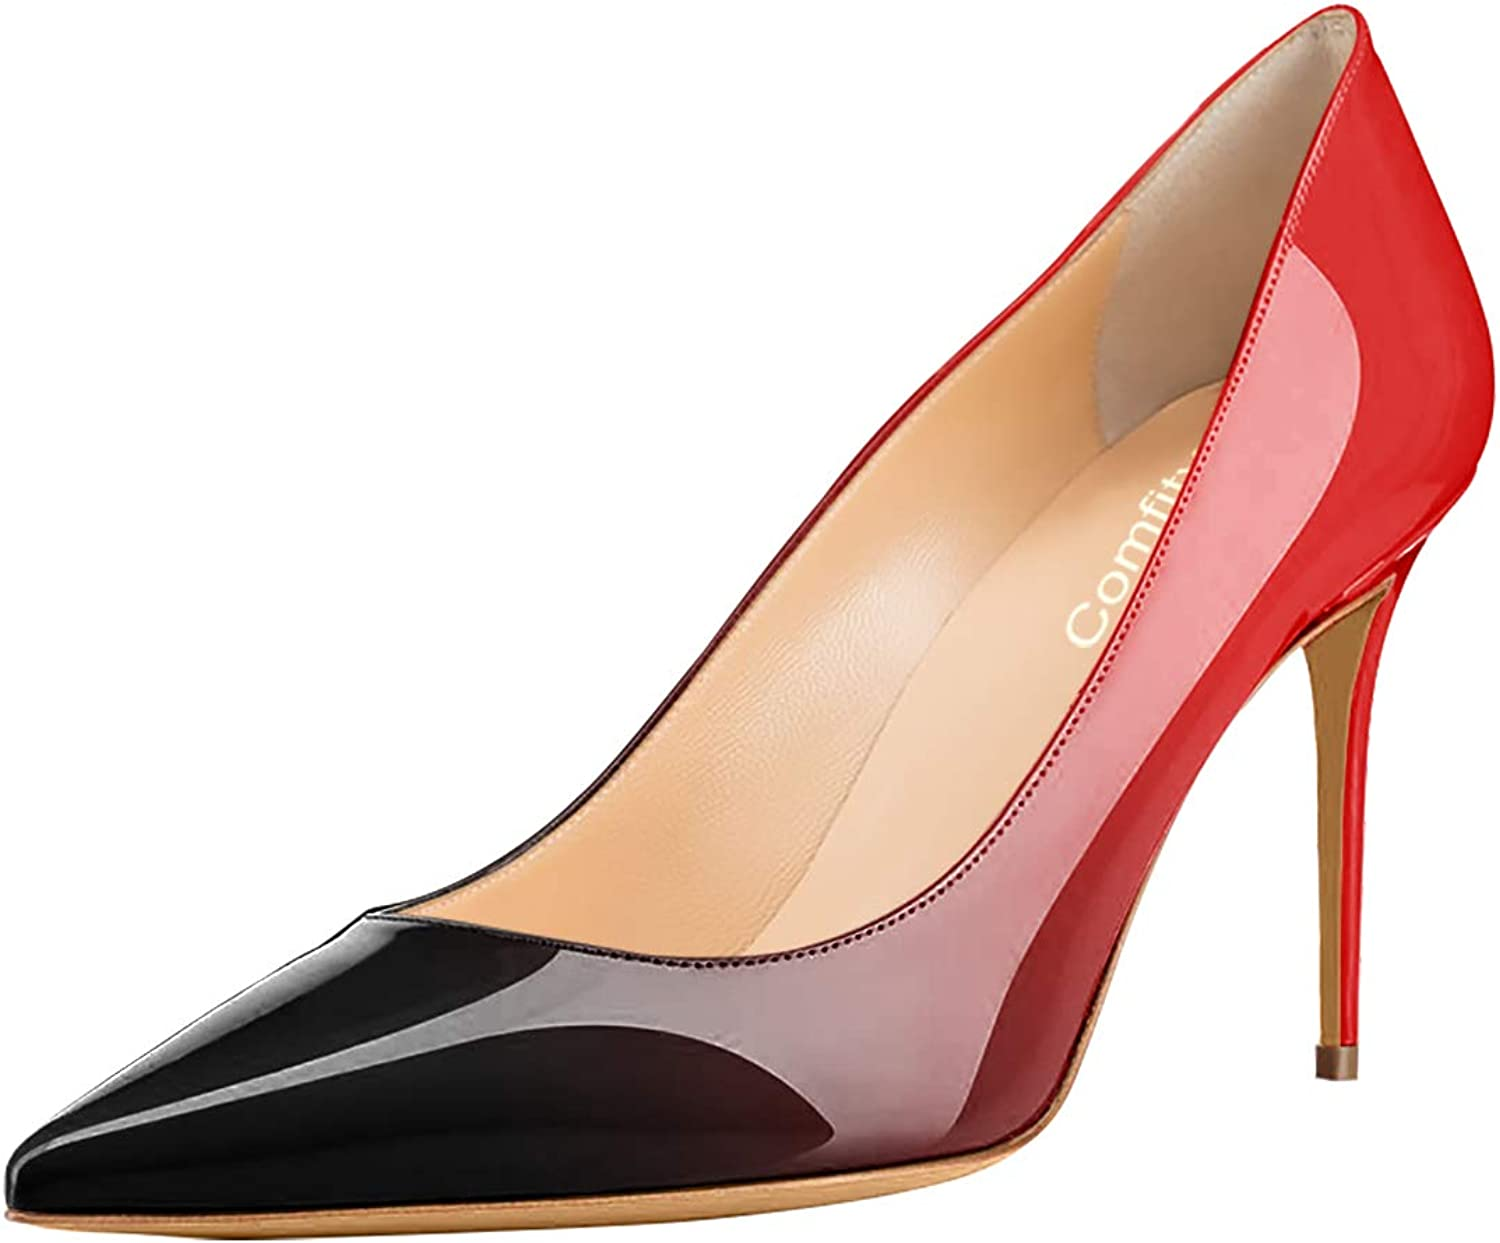 Comfity Pumps shoes, Women's Slip On High Heels Sexy Pointed Toe shoes Dress Office Pump Sandals